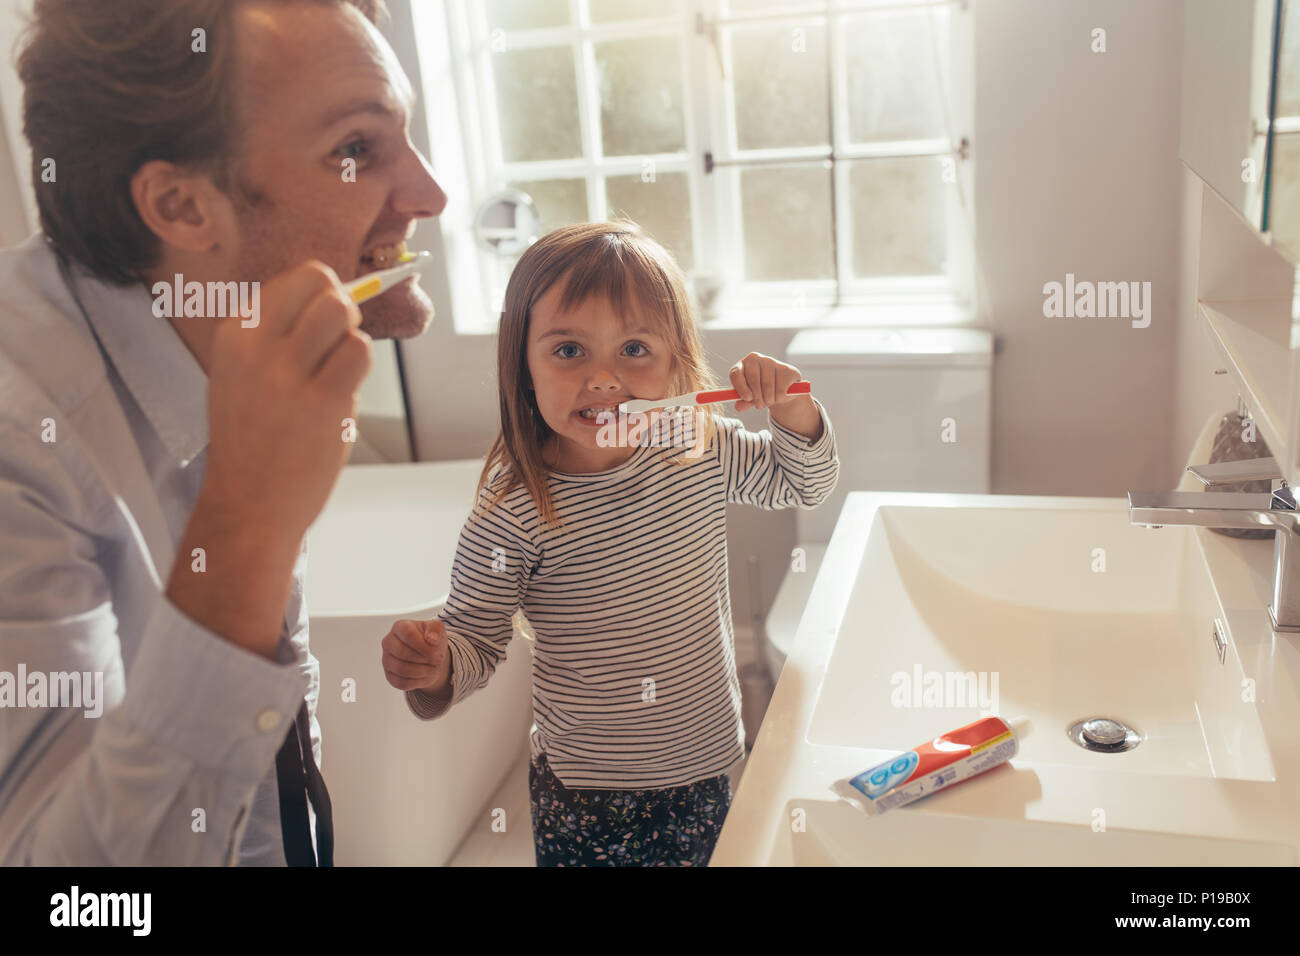 Father and daughter brushing teeth standing in bathroom. Man teaching his daughter how to brush teeth. - Stock Image